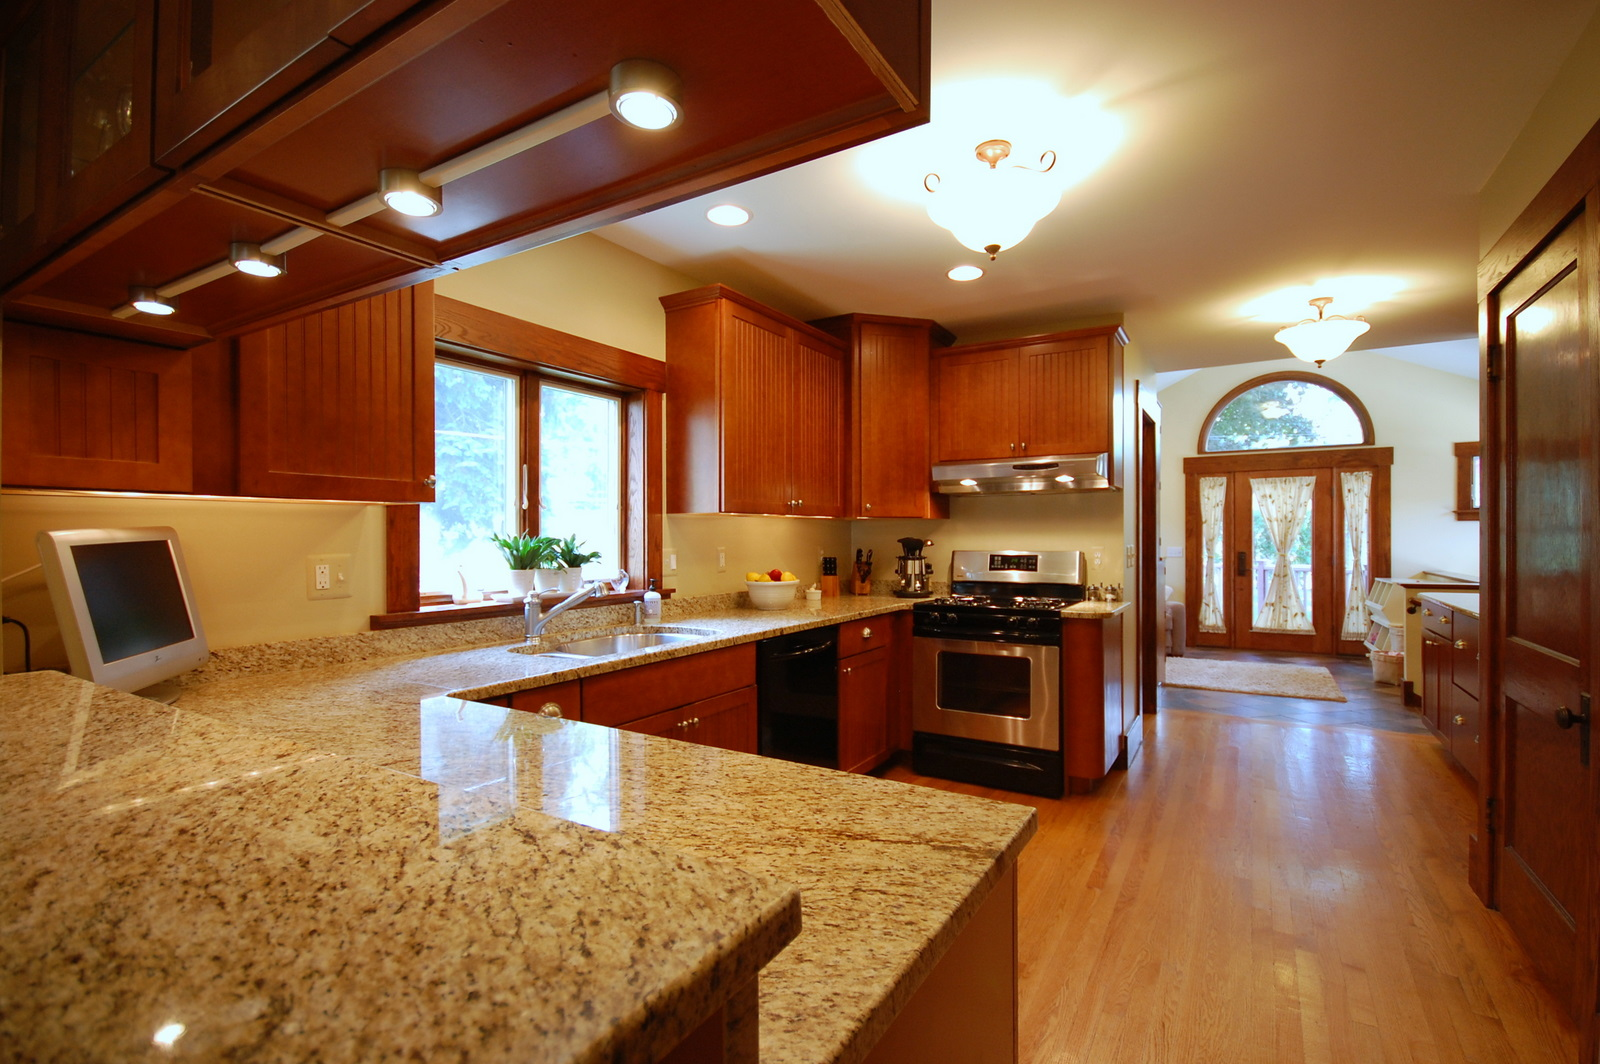 Granite installation jmarvinhandyman for Style kitchen countertops